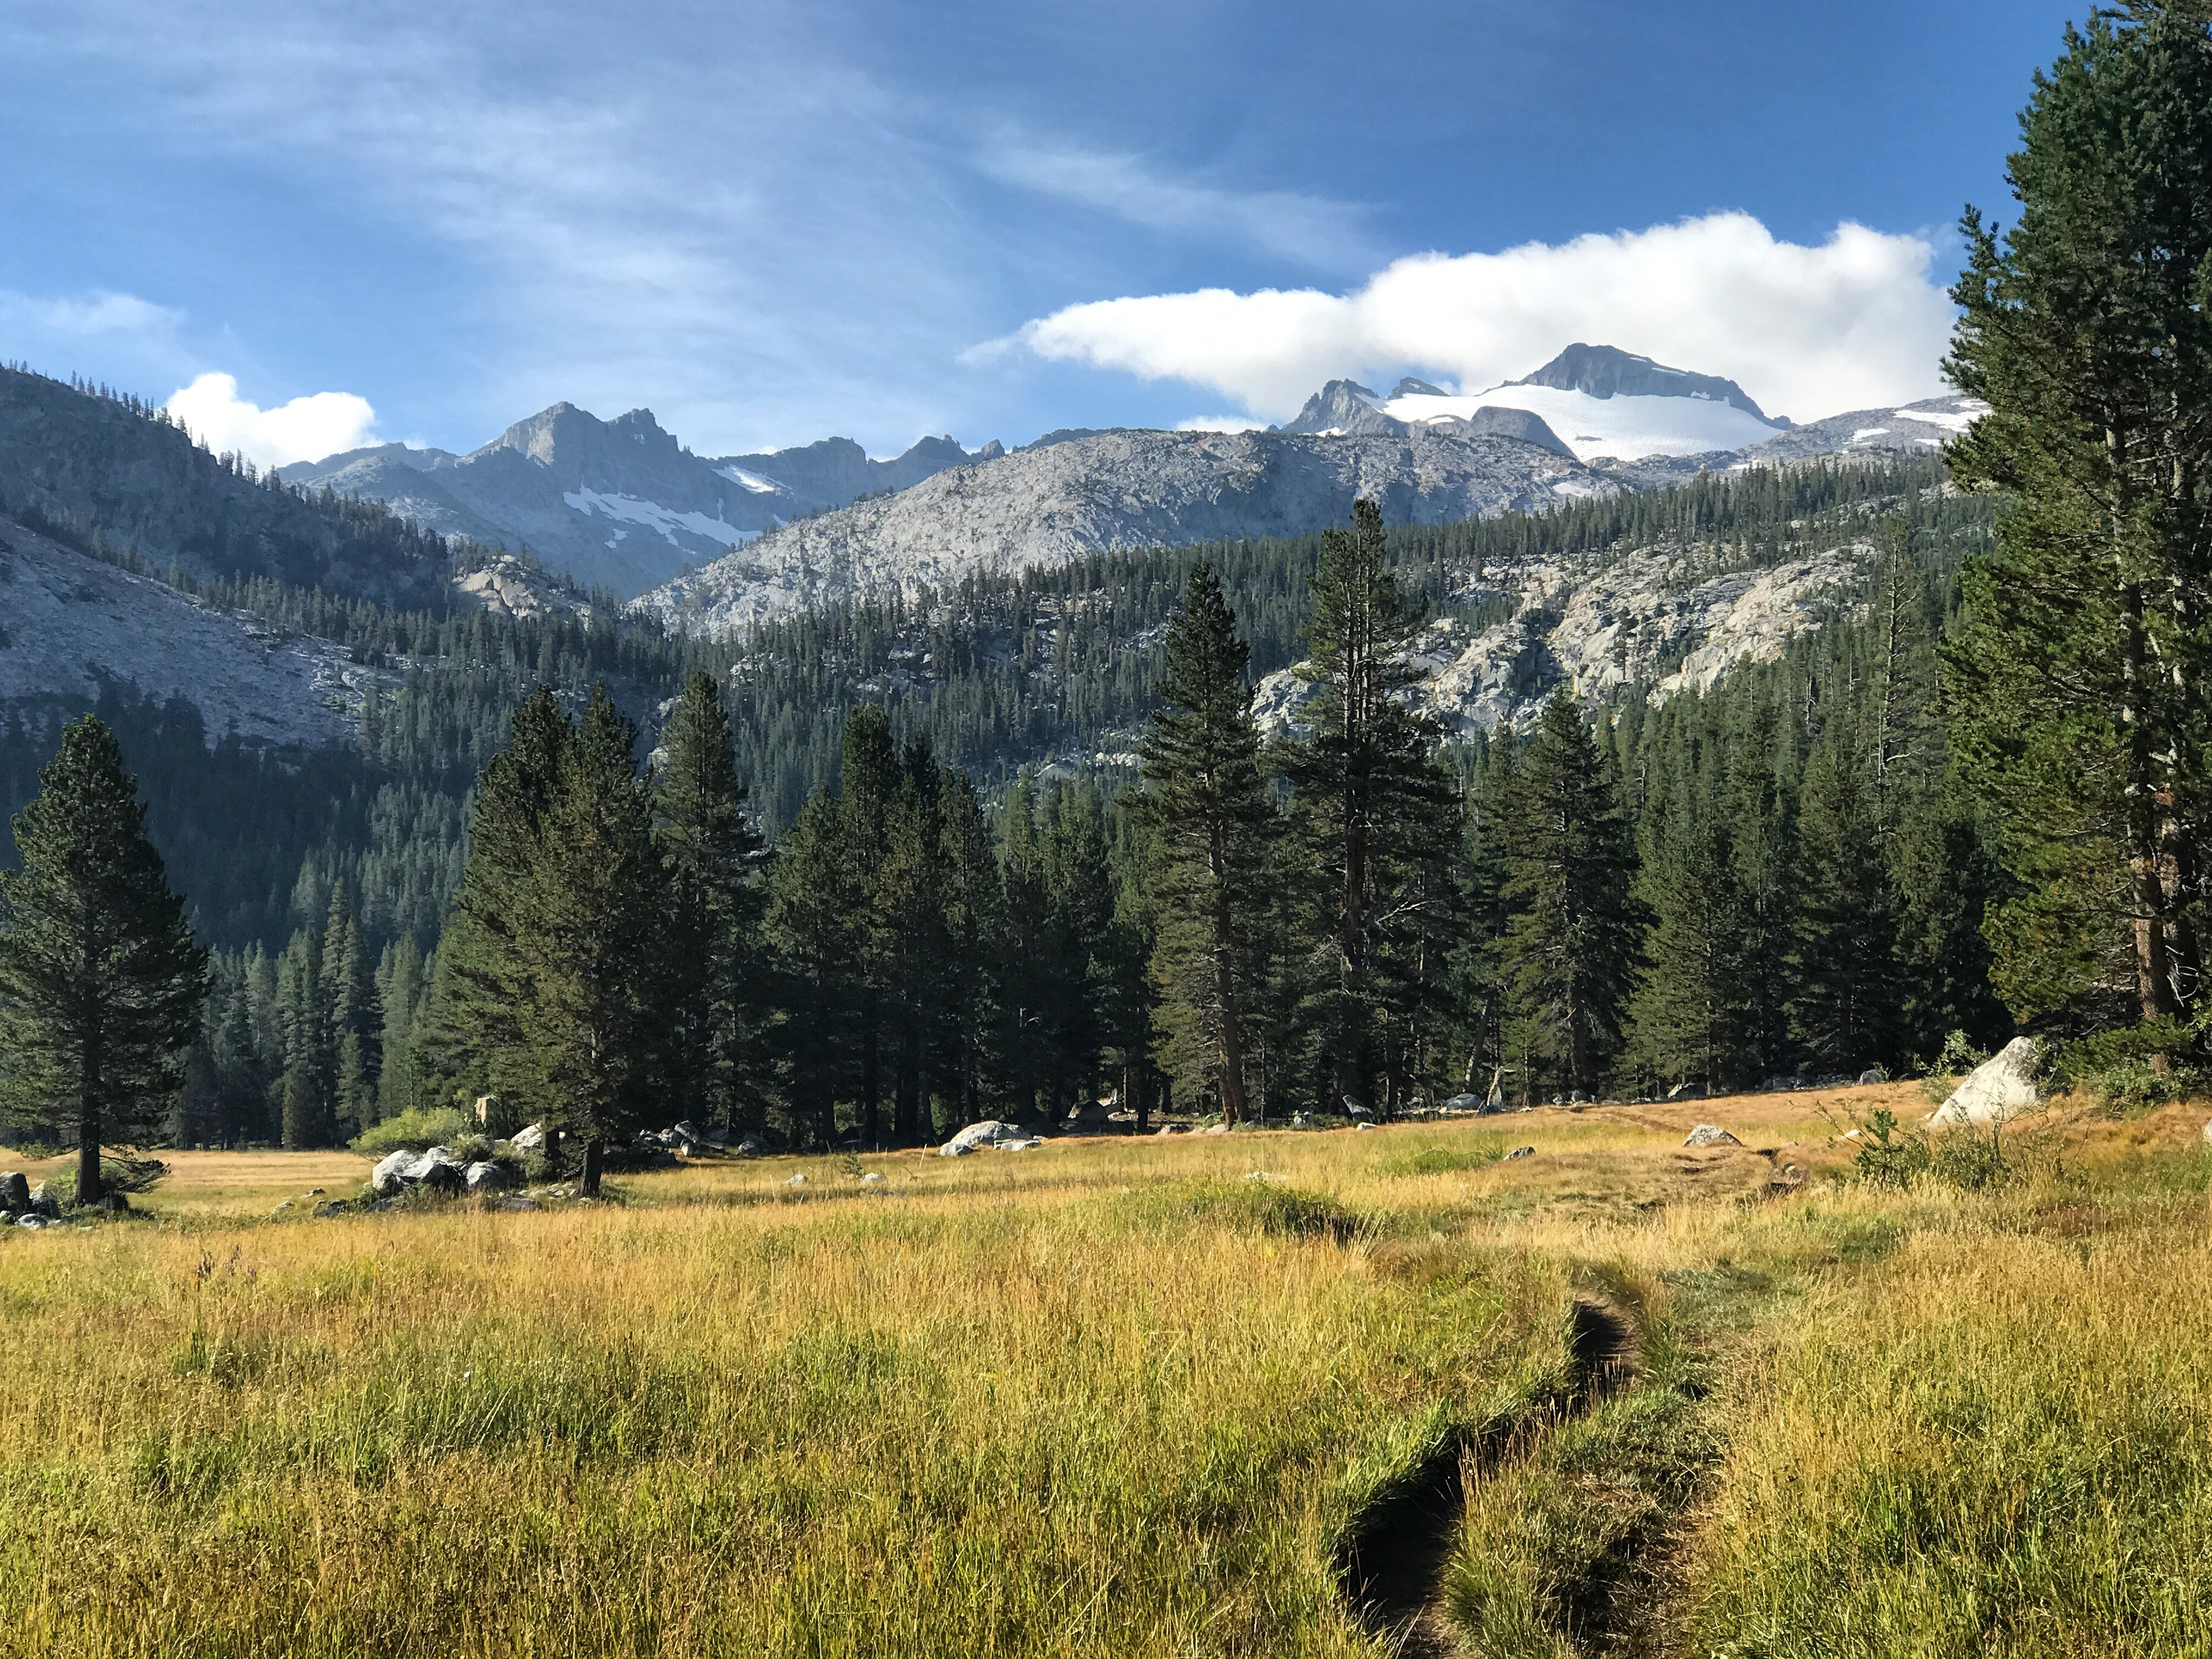 How To Choose Your Stove And Water Purification For The Pacific Crest Trail The Trek